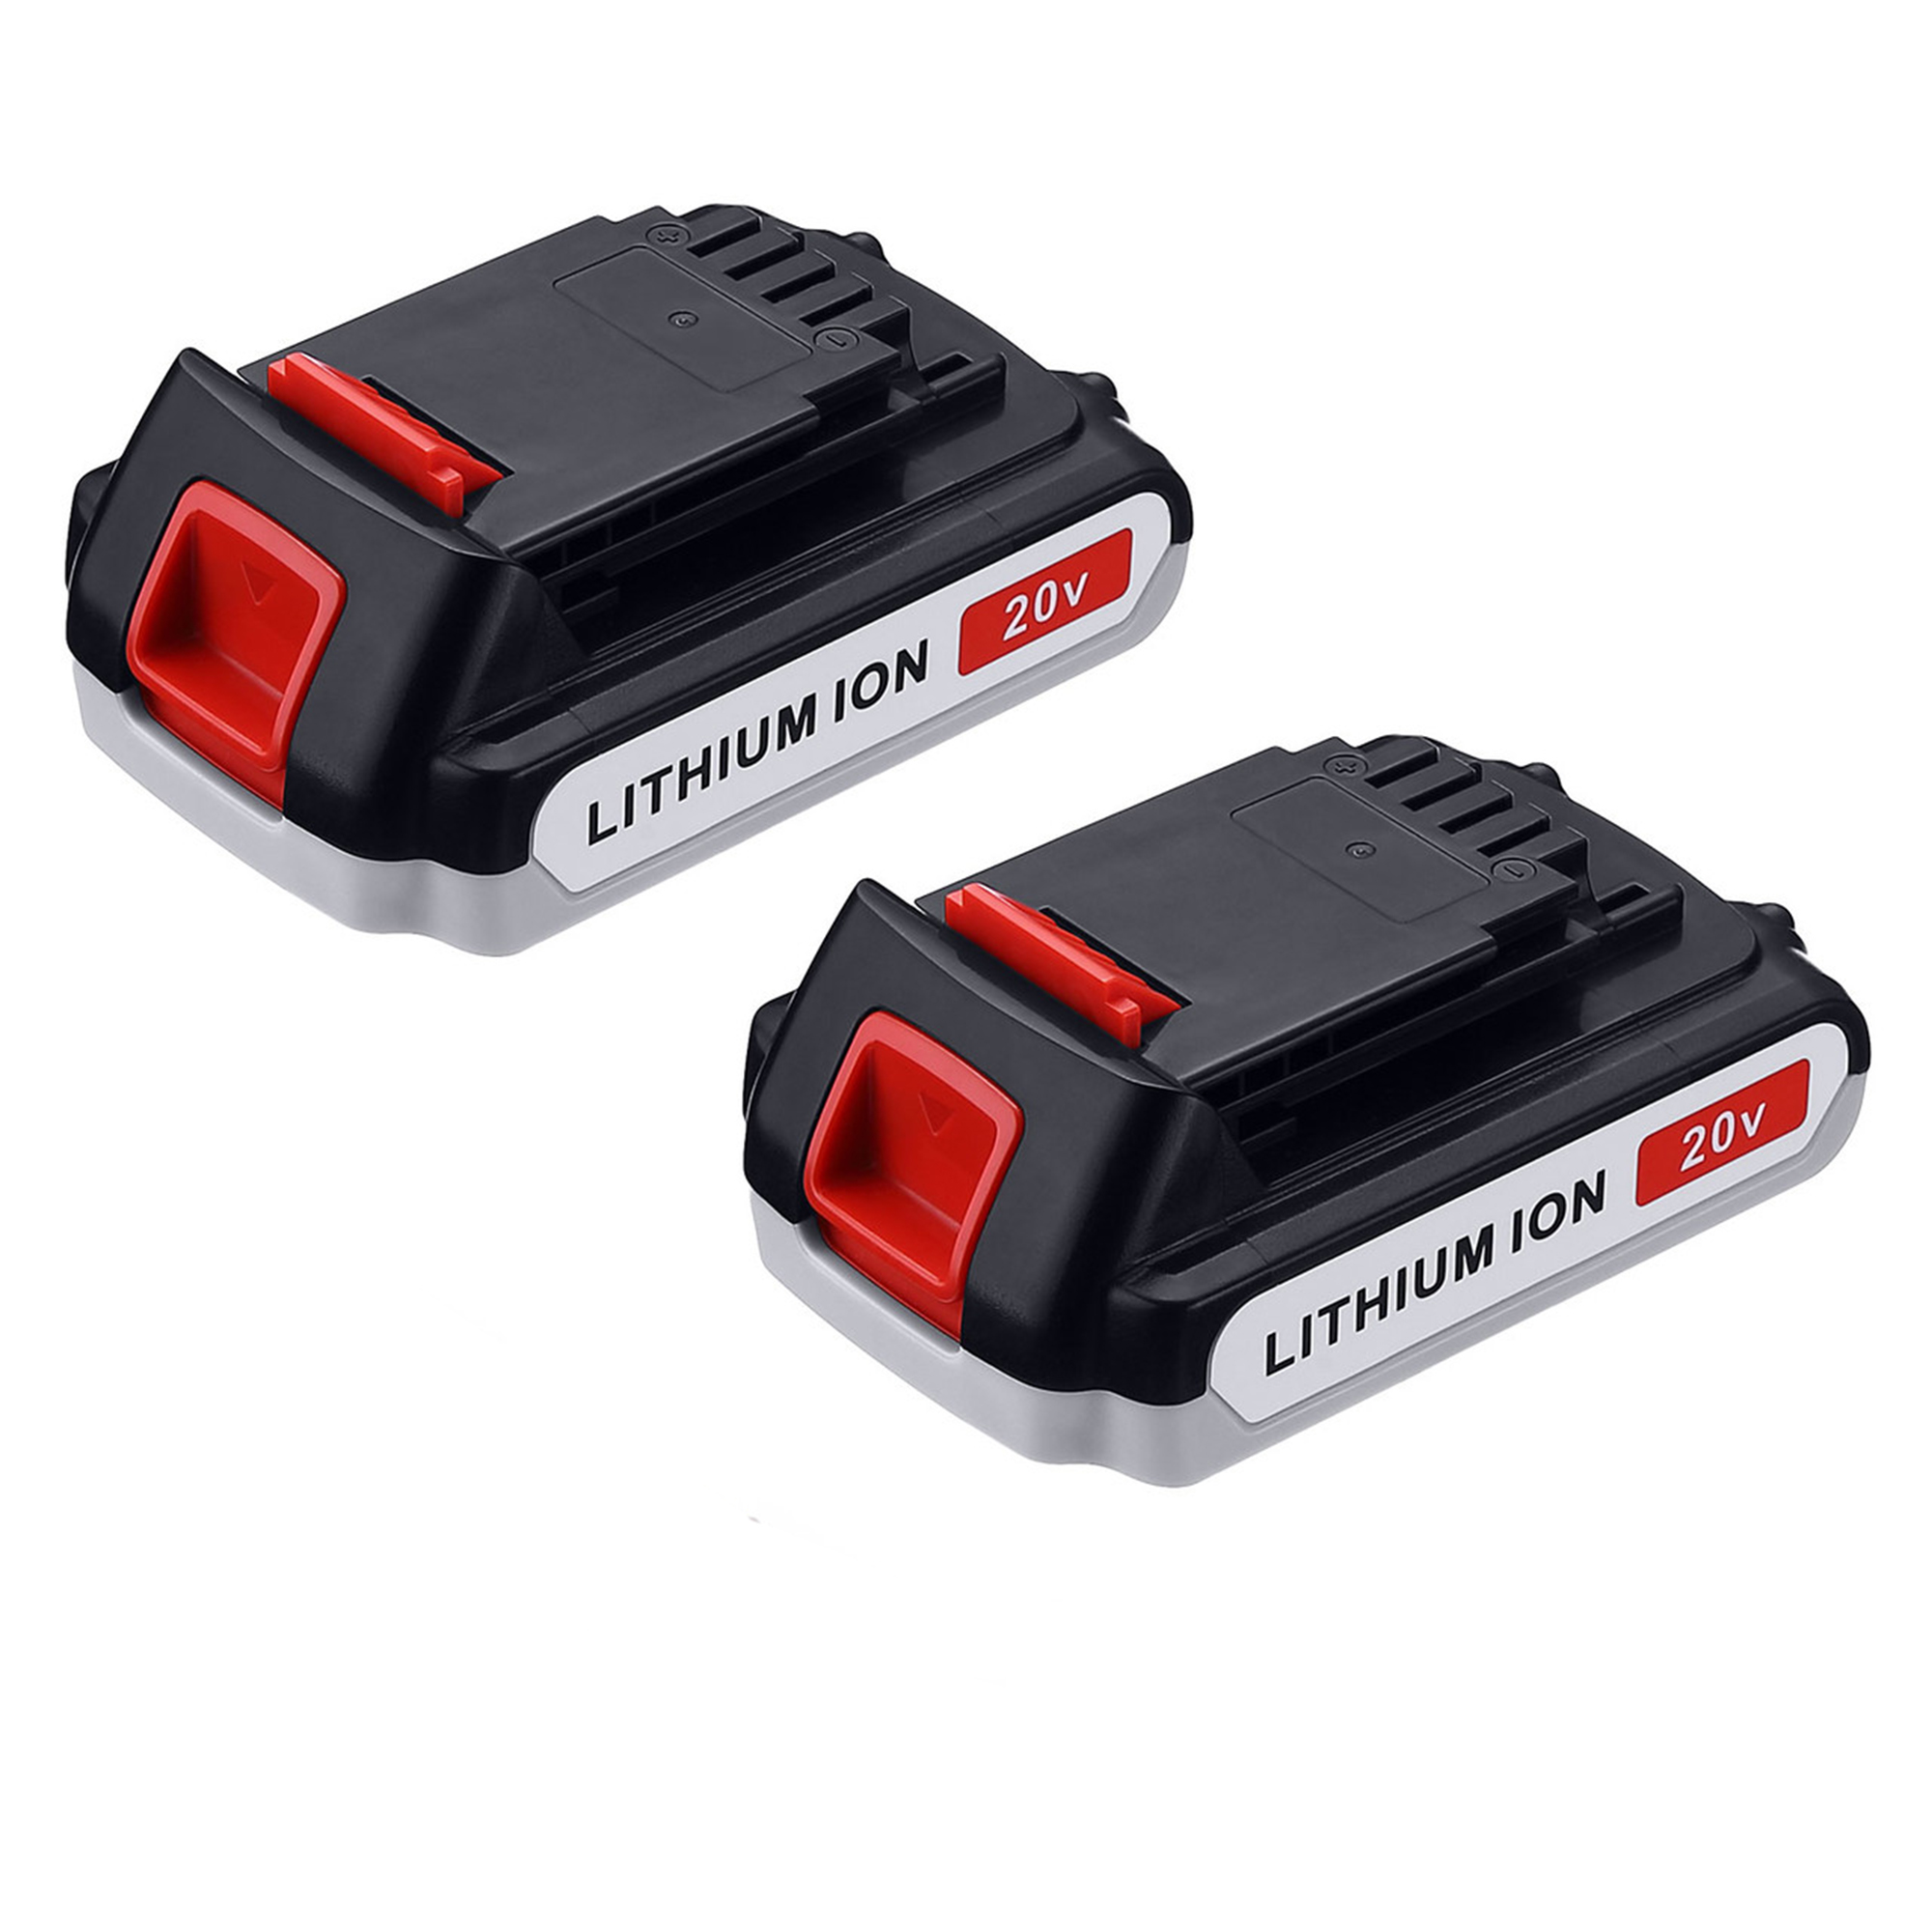 Powerextra 2-Pack 20v 2500mAh Replacement Battery for Black&Decker LBXR20 LB20, LBX20 Cordless Power Tools Black and Decker Lithium 20 Volt Batteries - Upgraded